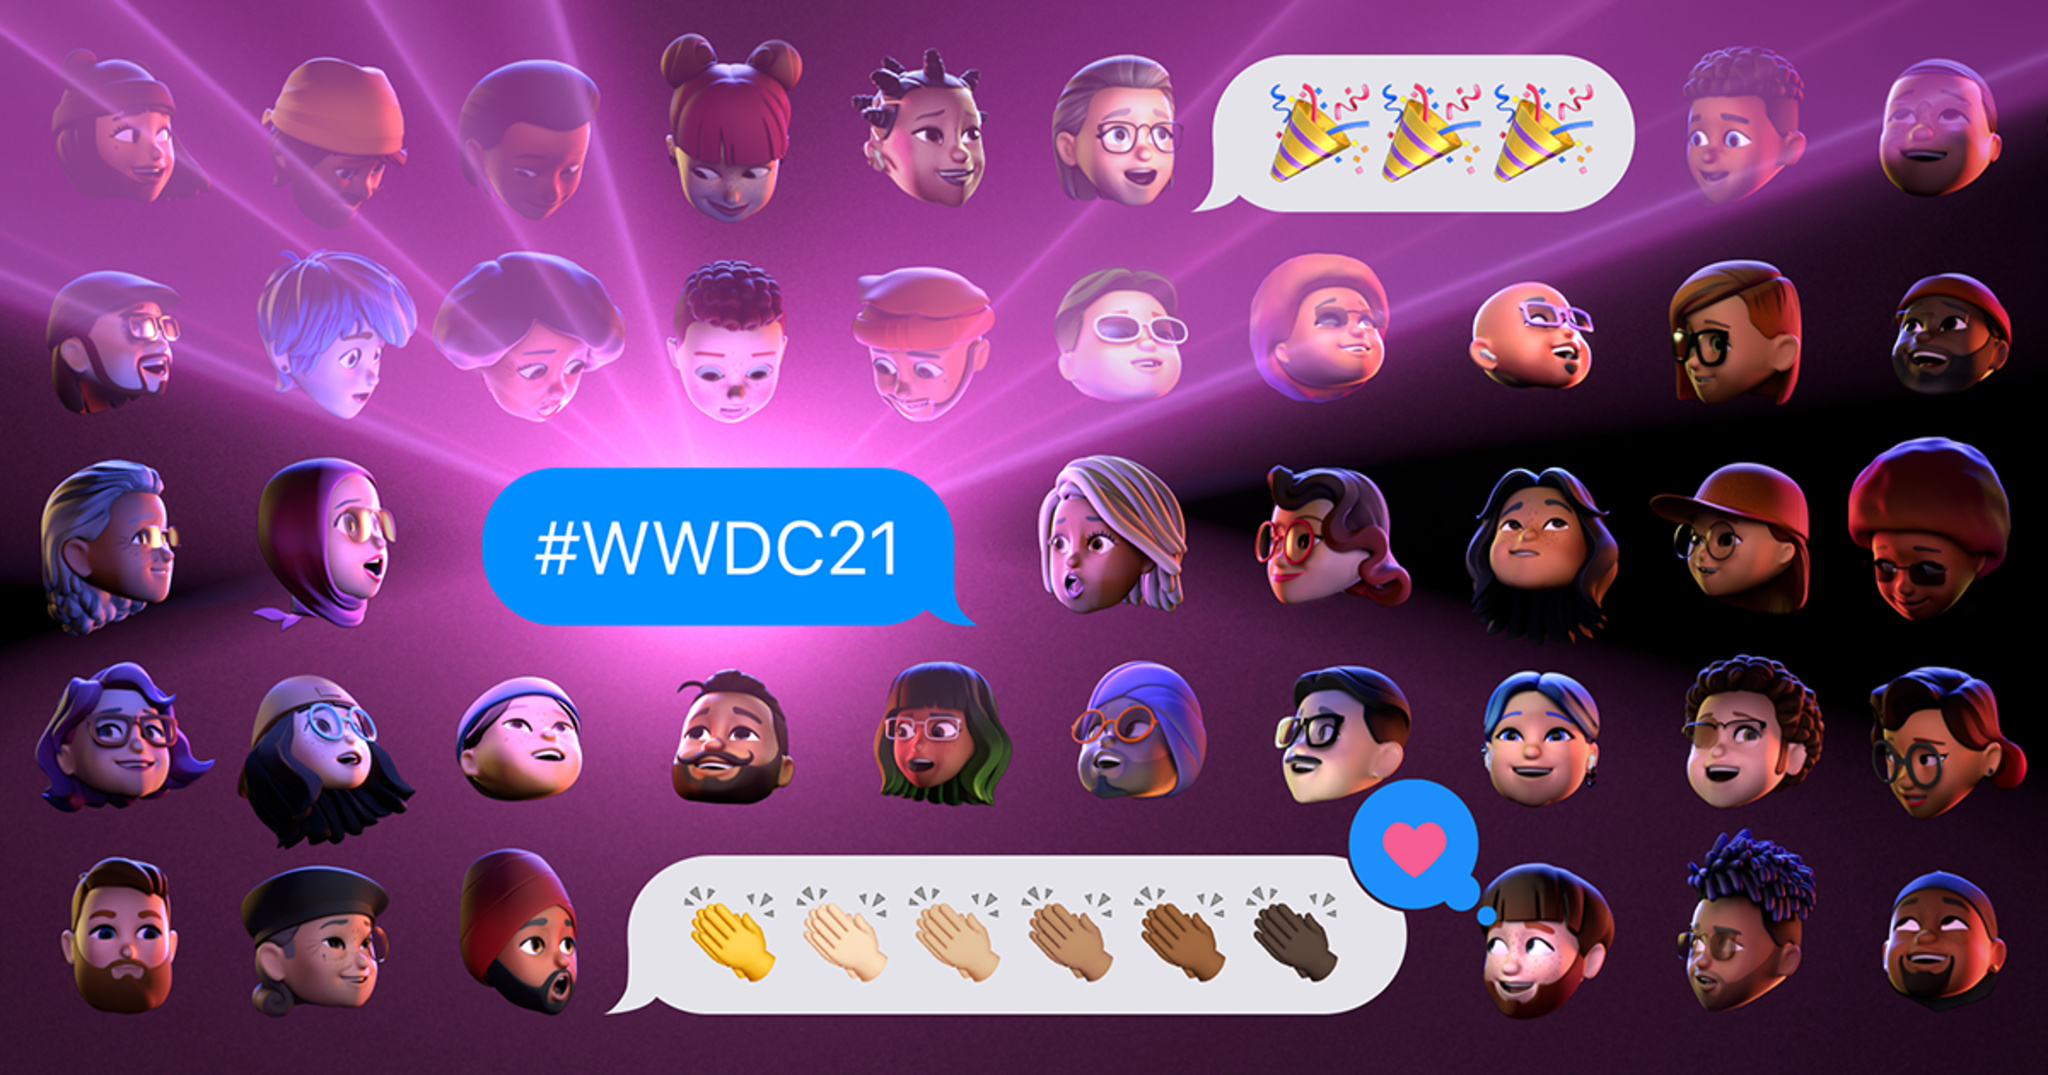 """Five rows of unique memojis gaze in amazement at three iMessage texts. A blue text bubble in the center reads """"#WWDC21"""". A white text bubble above it displays three party popper emojis. A white text bubble below it displays the clapping hands emoji in all six skin tones. This text has been """"loved"""" with a pink heart."""